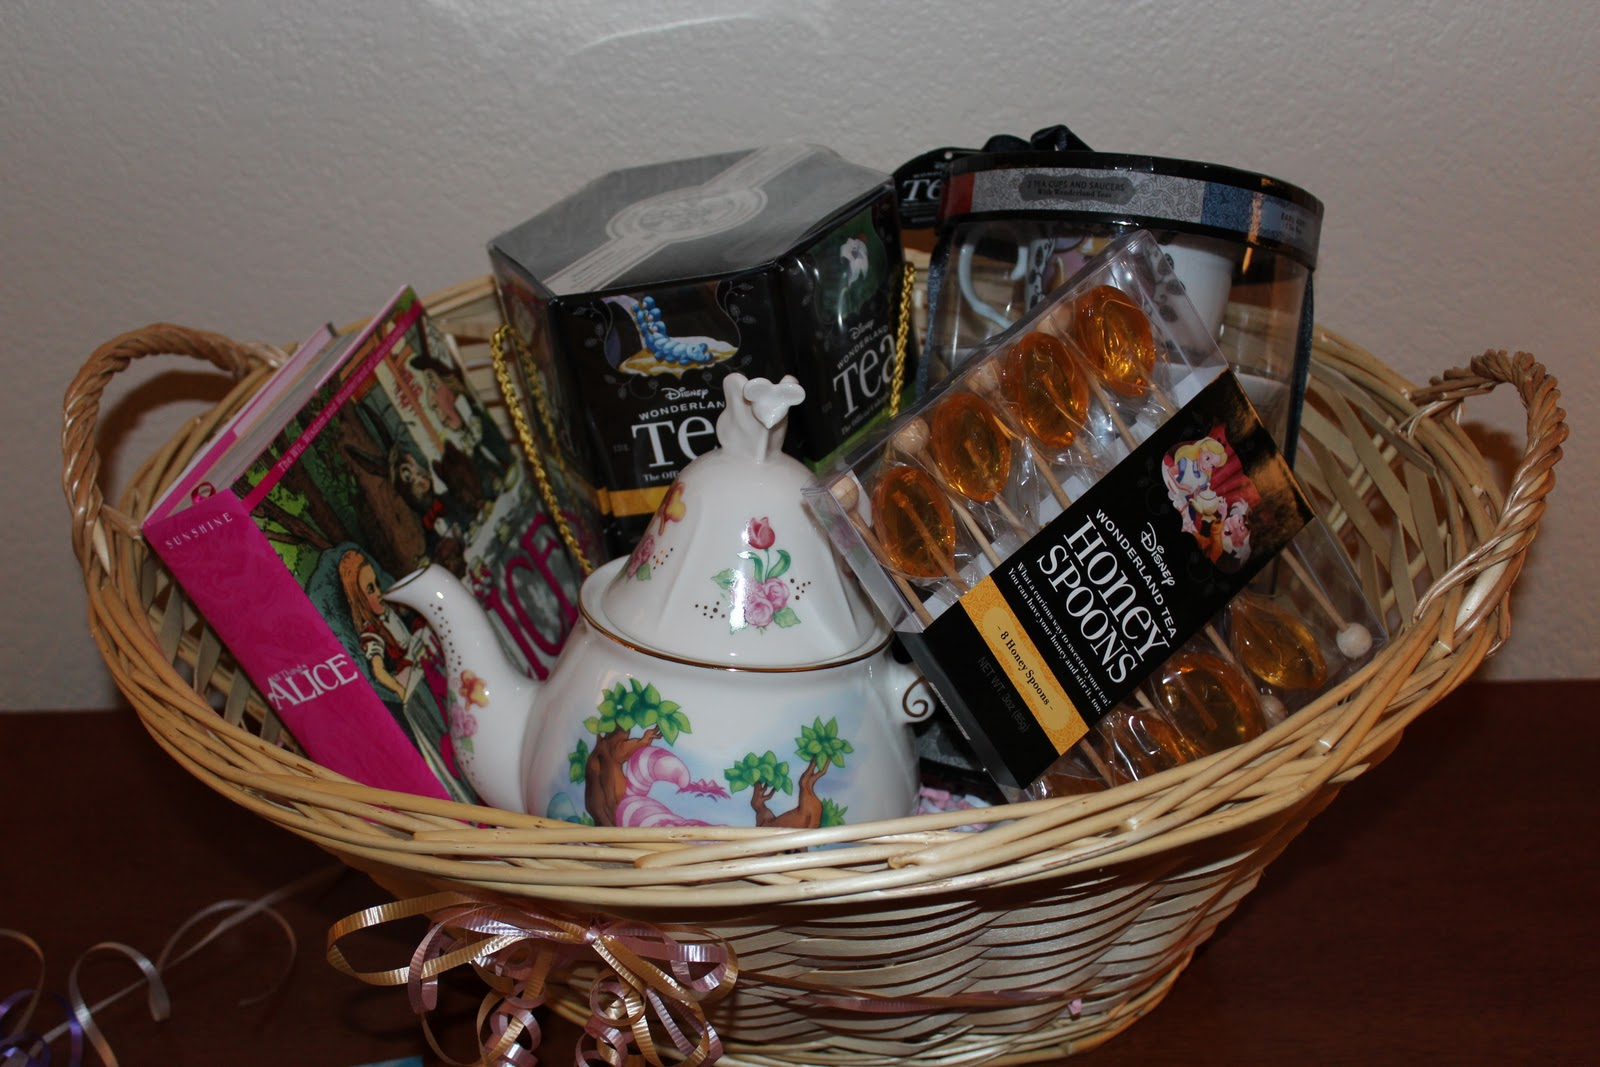 The amazing gift basket Cody put together, knowing my loves for both ...